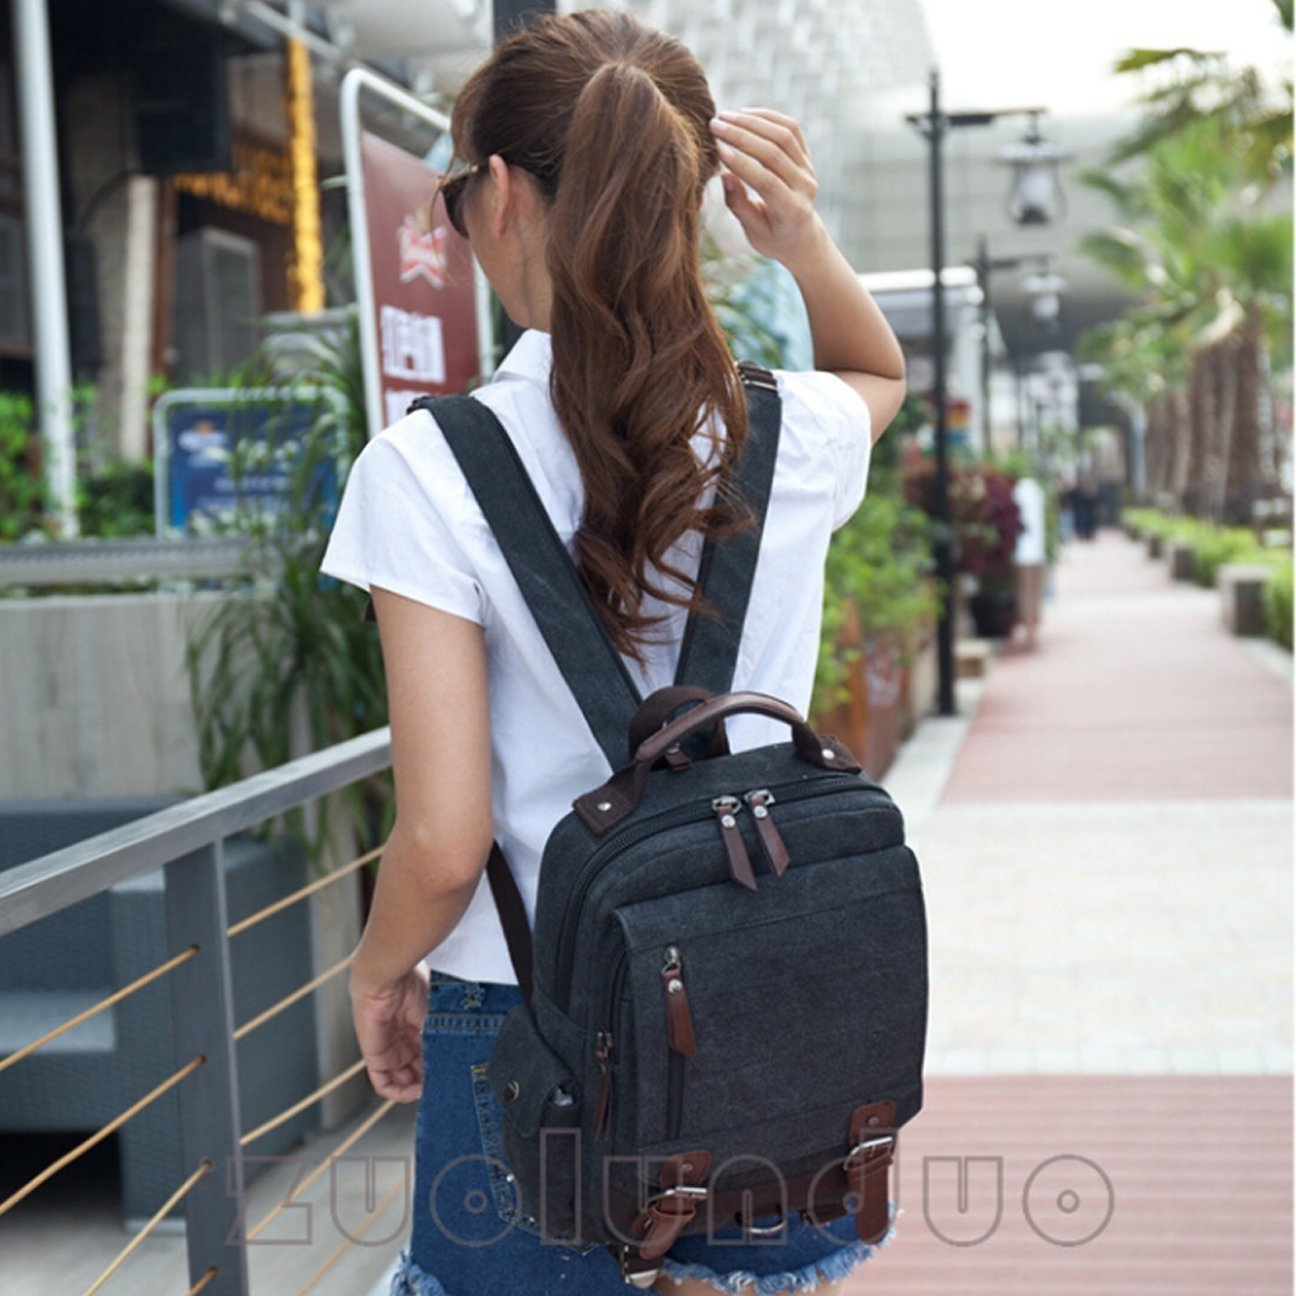 Unisex Canvas Cross Body Messenger Bag Sling Bag Backpack Shoulder Bag Travel Rucksack For Men and Women Queenie 8596 Sling Bag Grey